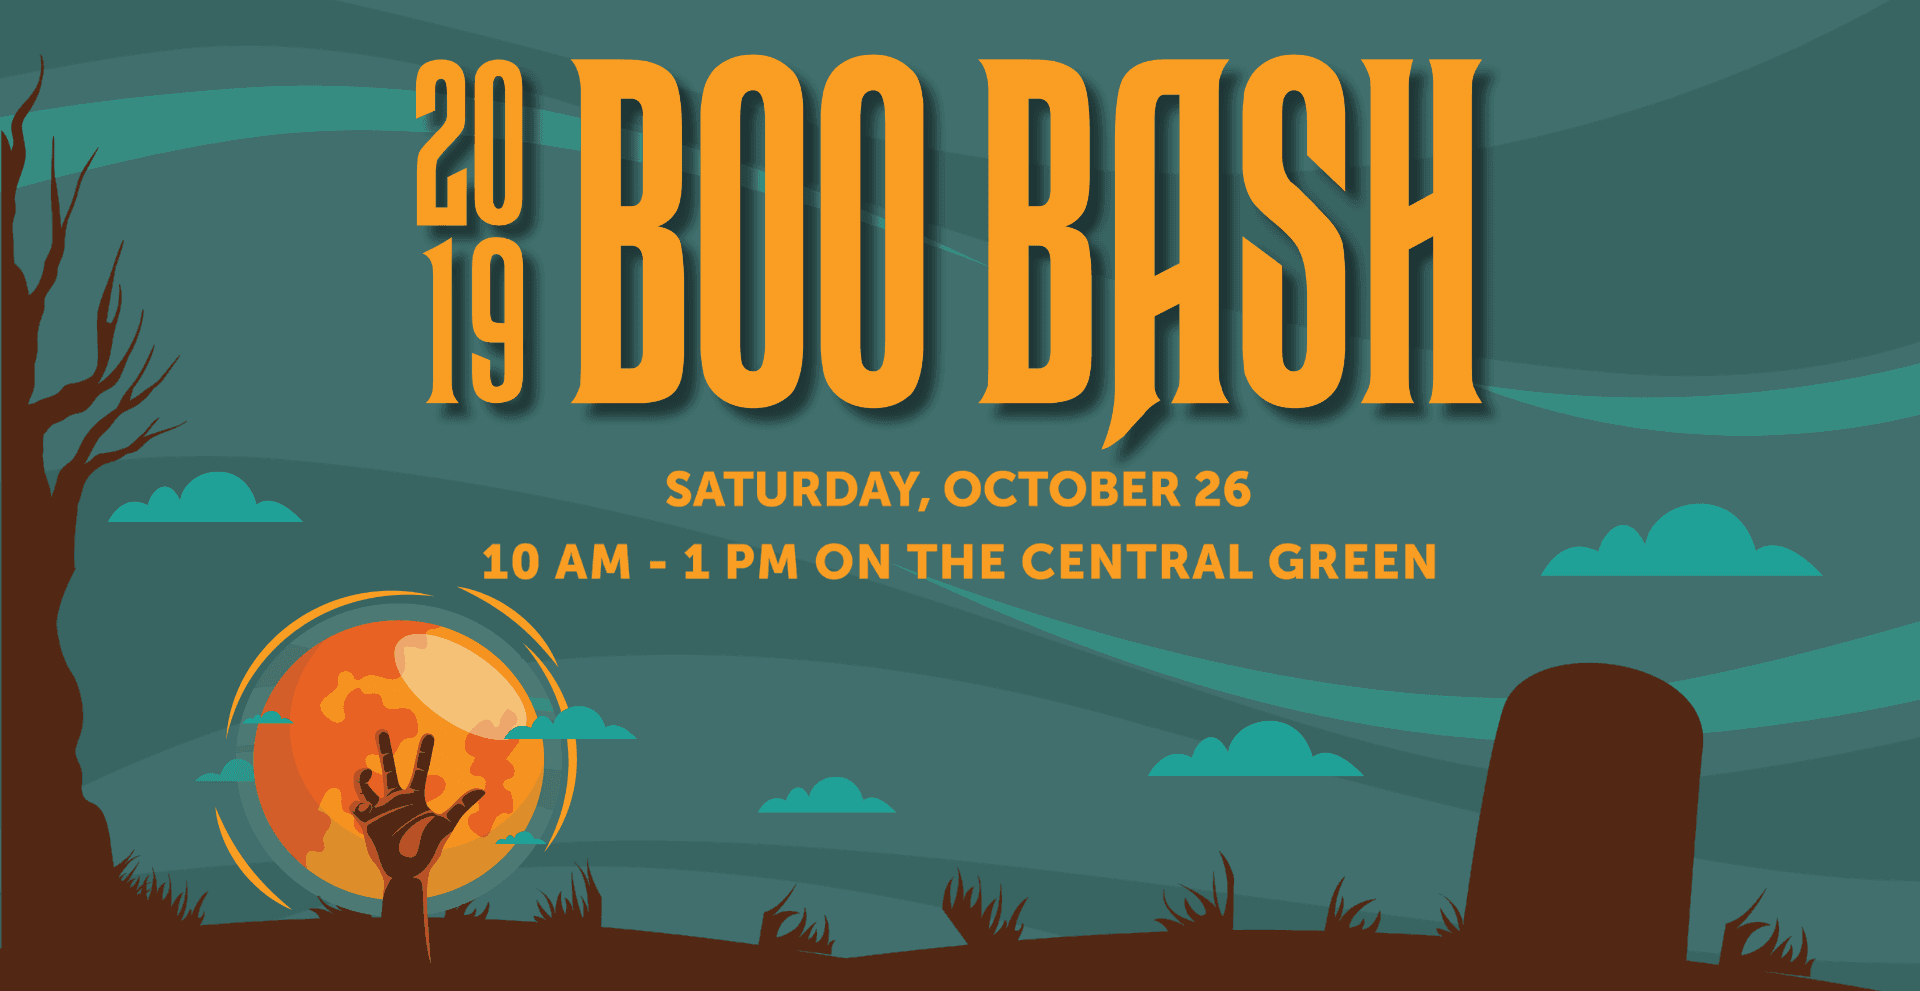 Boo Bash  saturday, october 26 10 am - 1 pm on the central green